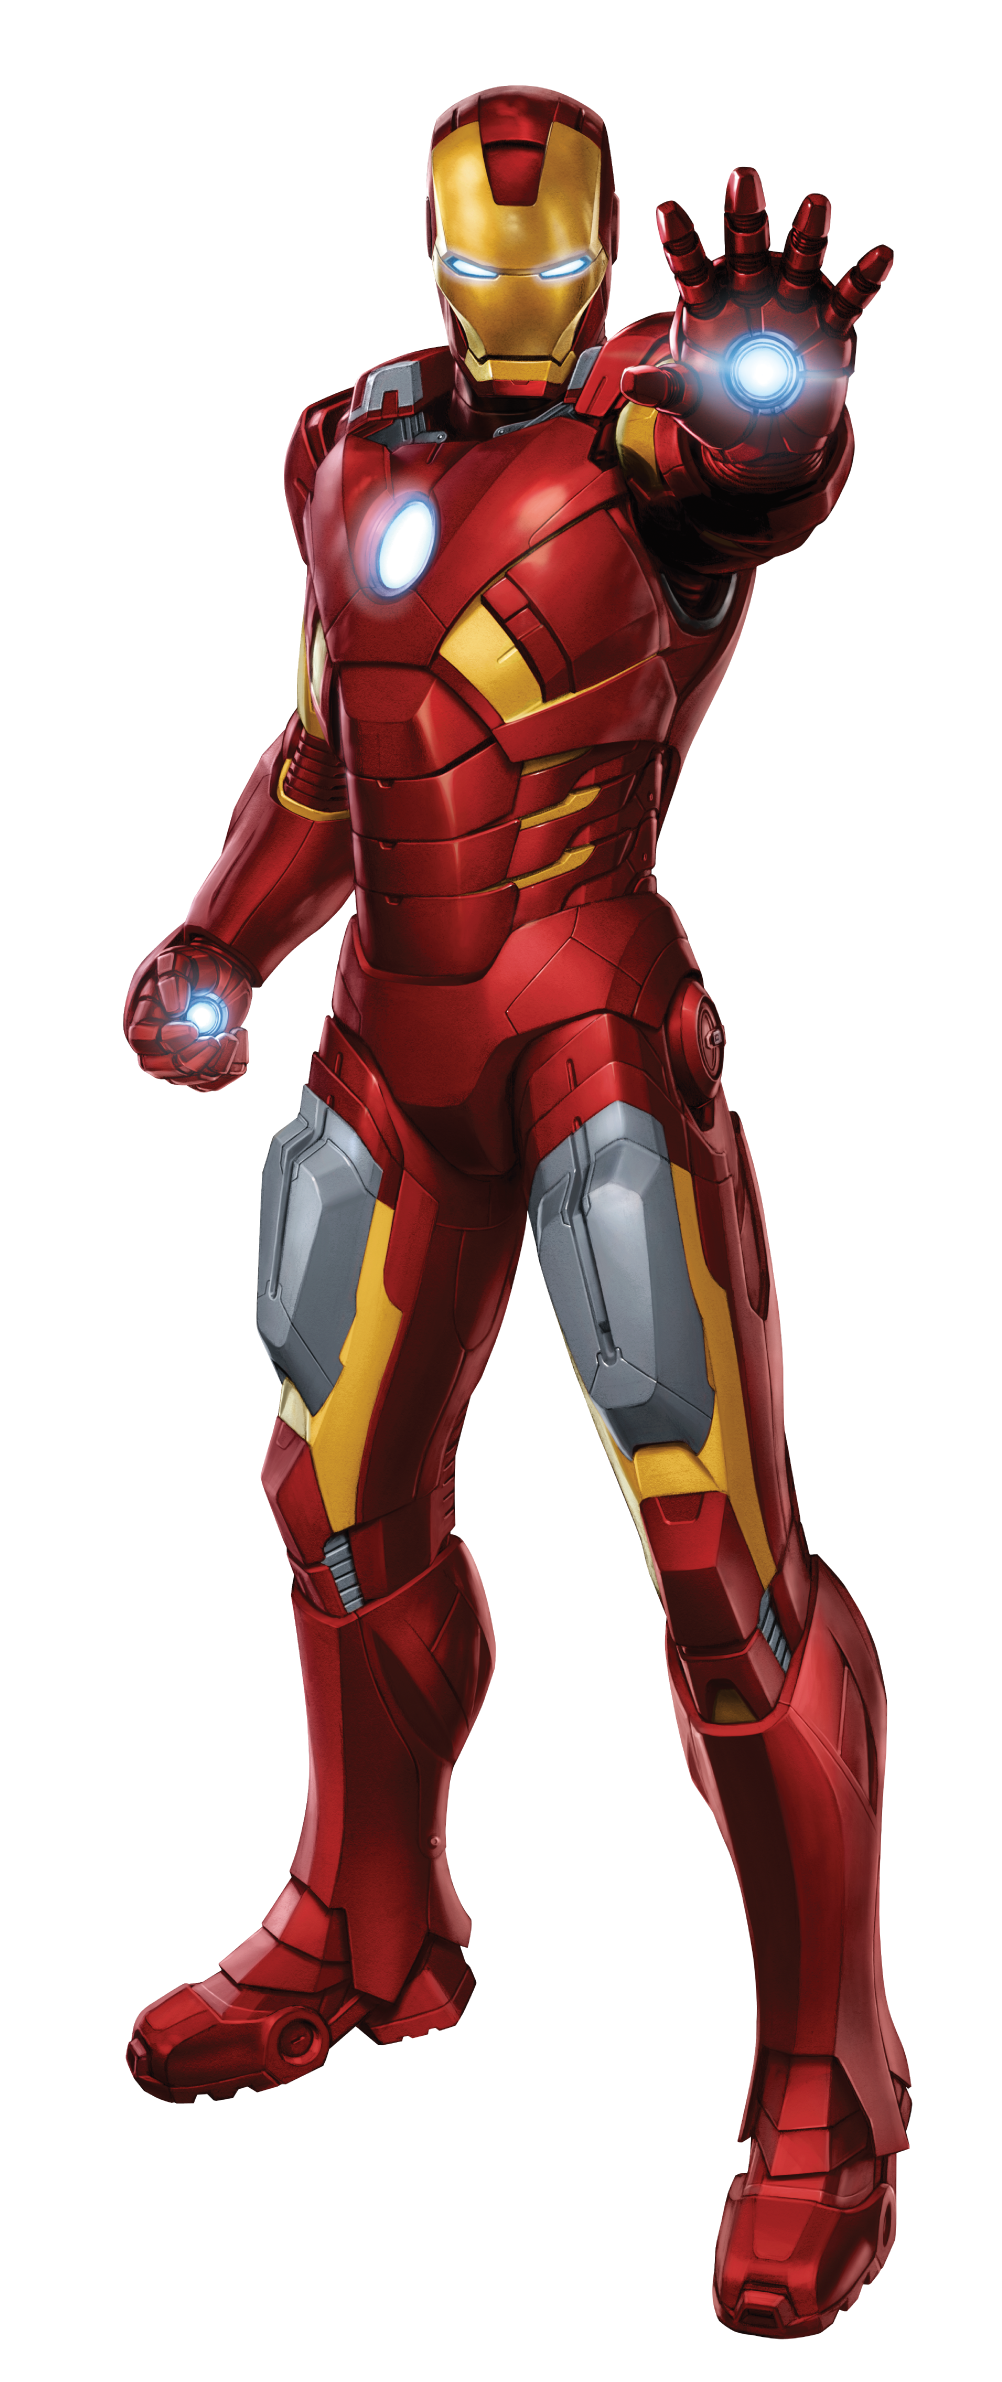 Ironman full body png. Iron man icon clipart